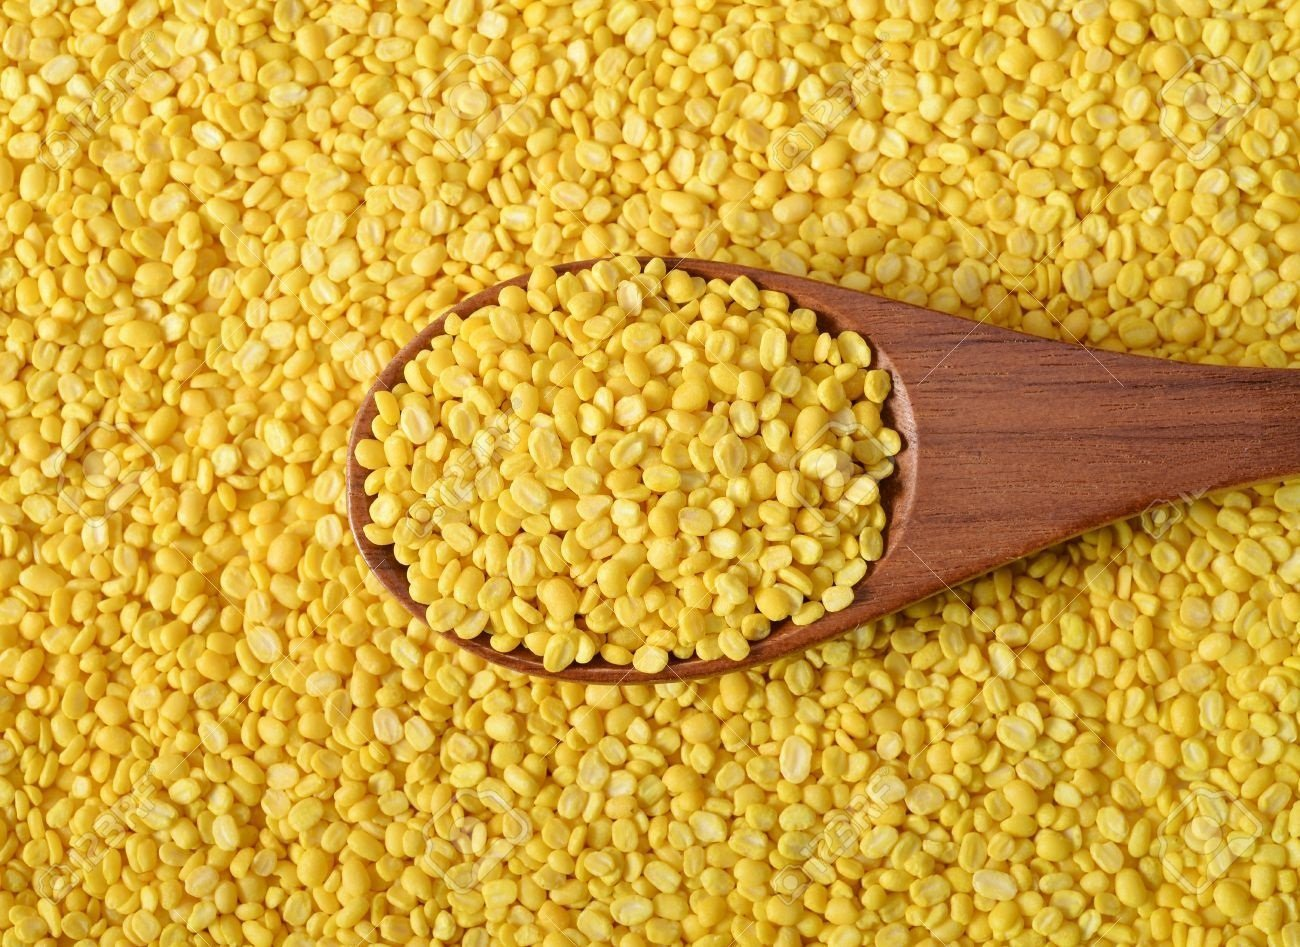 Nobility Unpolished Mung Lentils 100g / 3.53oz - Indian Split Yellow Moong Dal - Pure and Healthy natural mung bean - Single Origin pulses